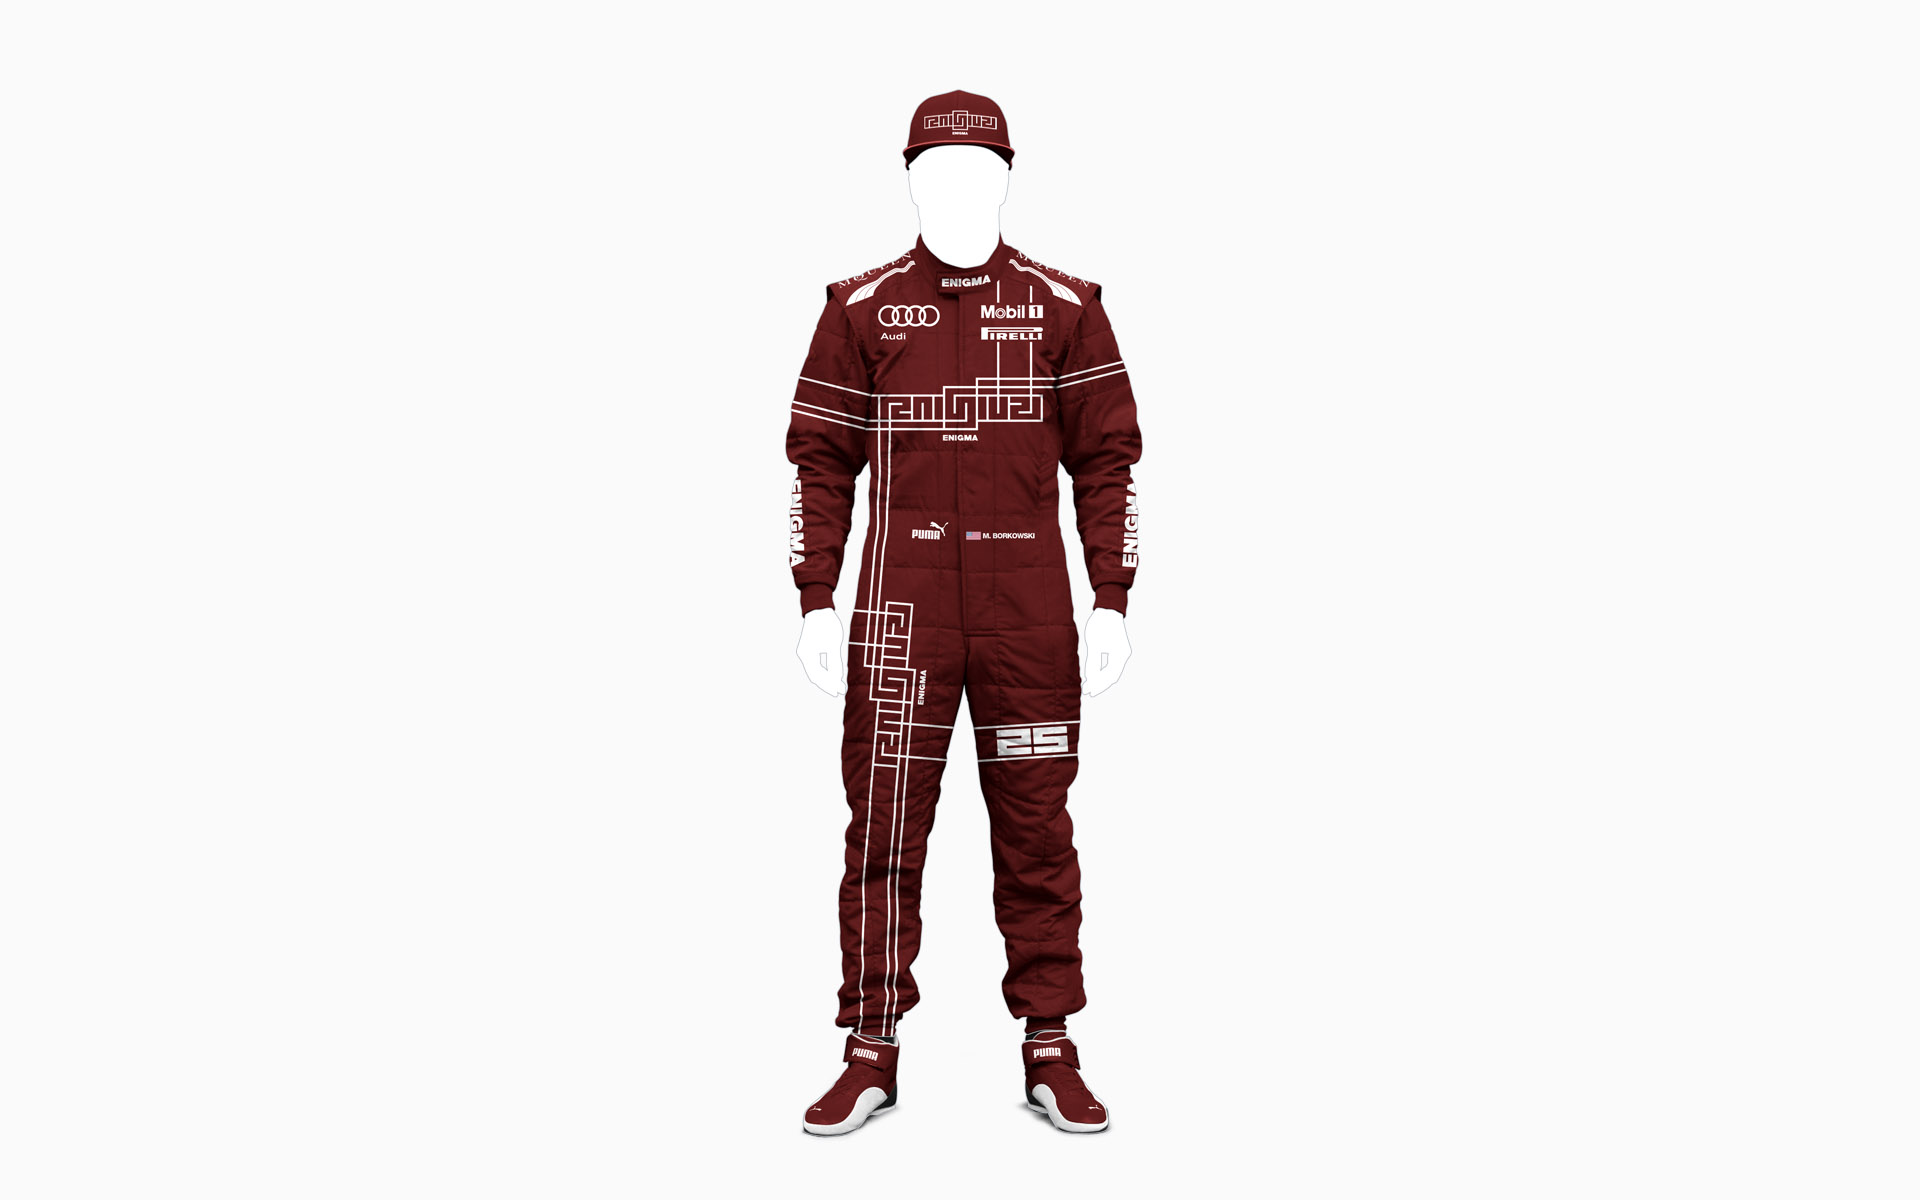 Franklin Estate Vineyards Enigma F1 Driver Firesuit Visualization